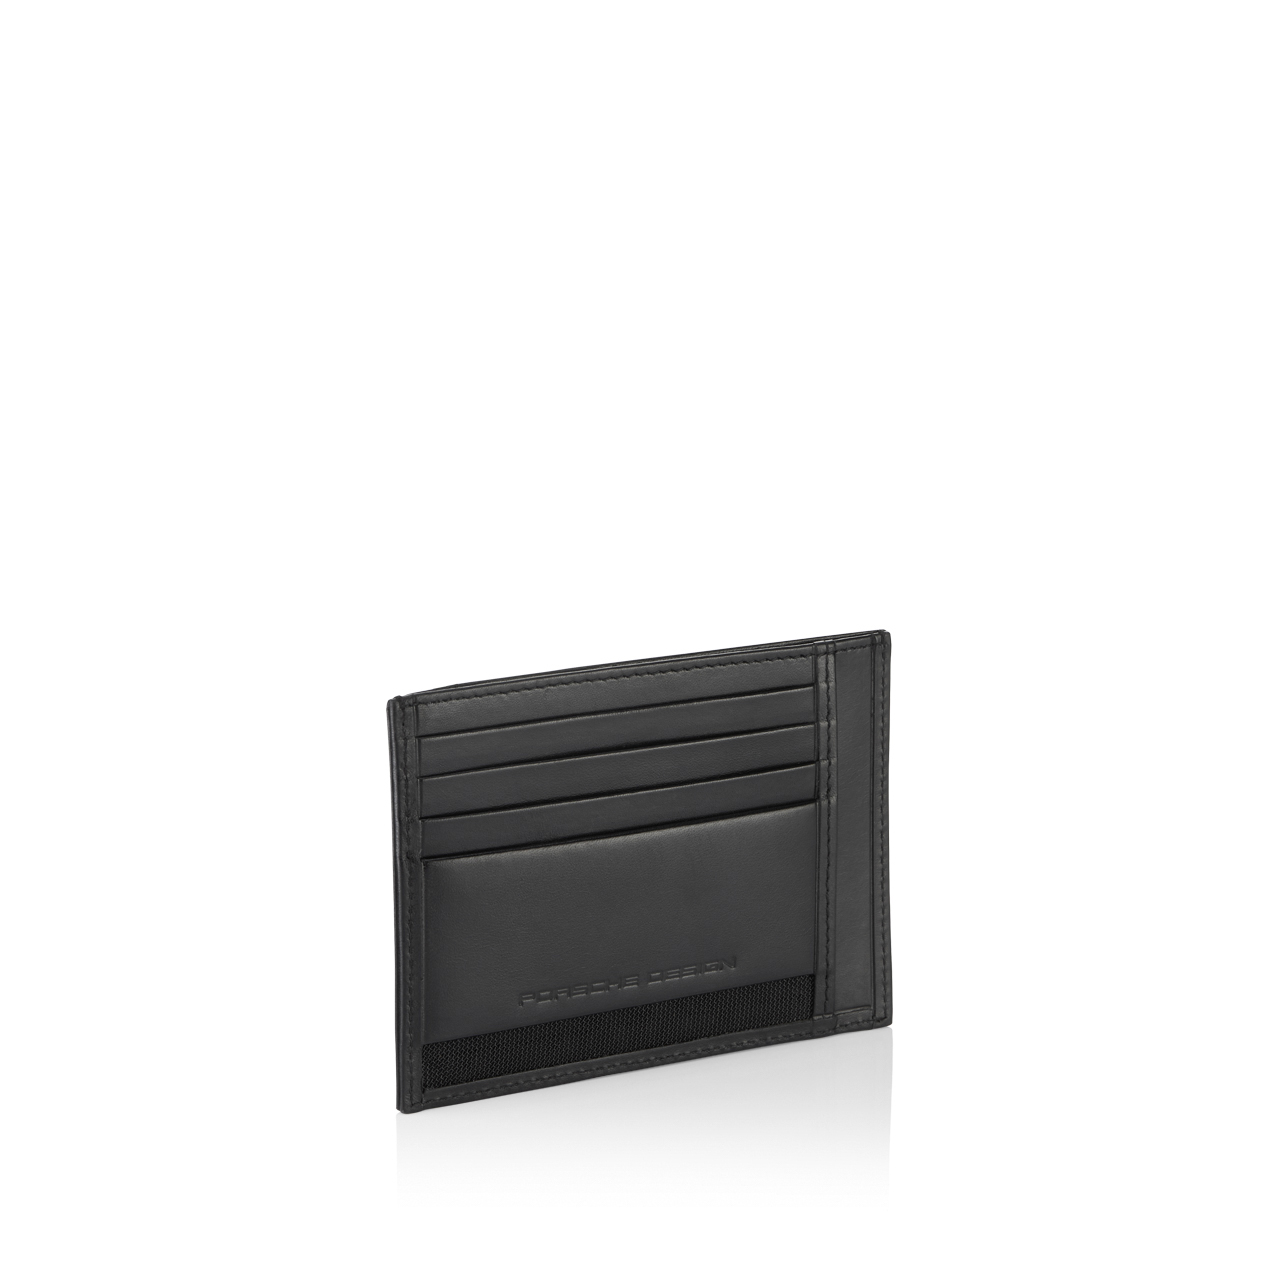 CL2 3.0 Card H4 Holder